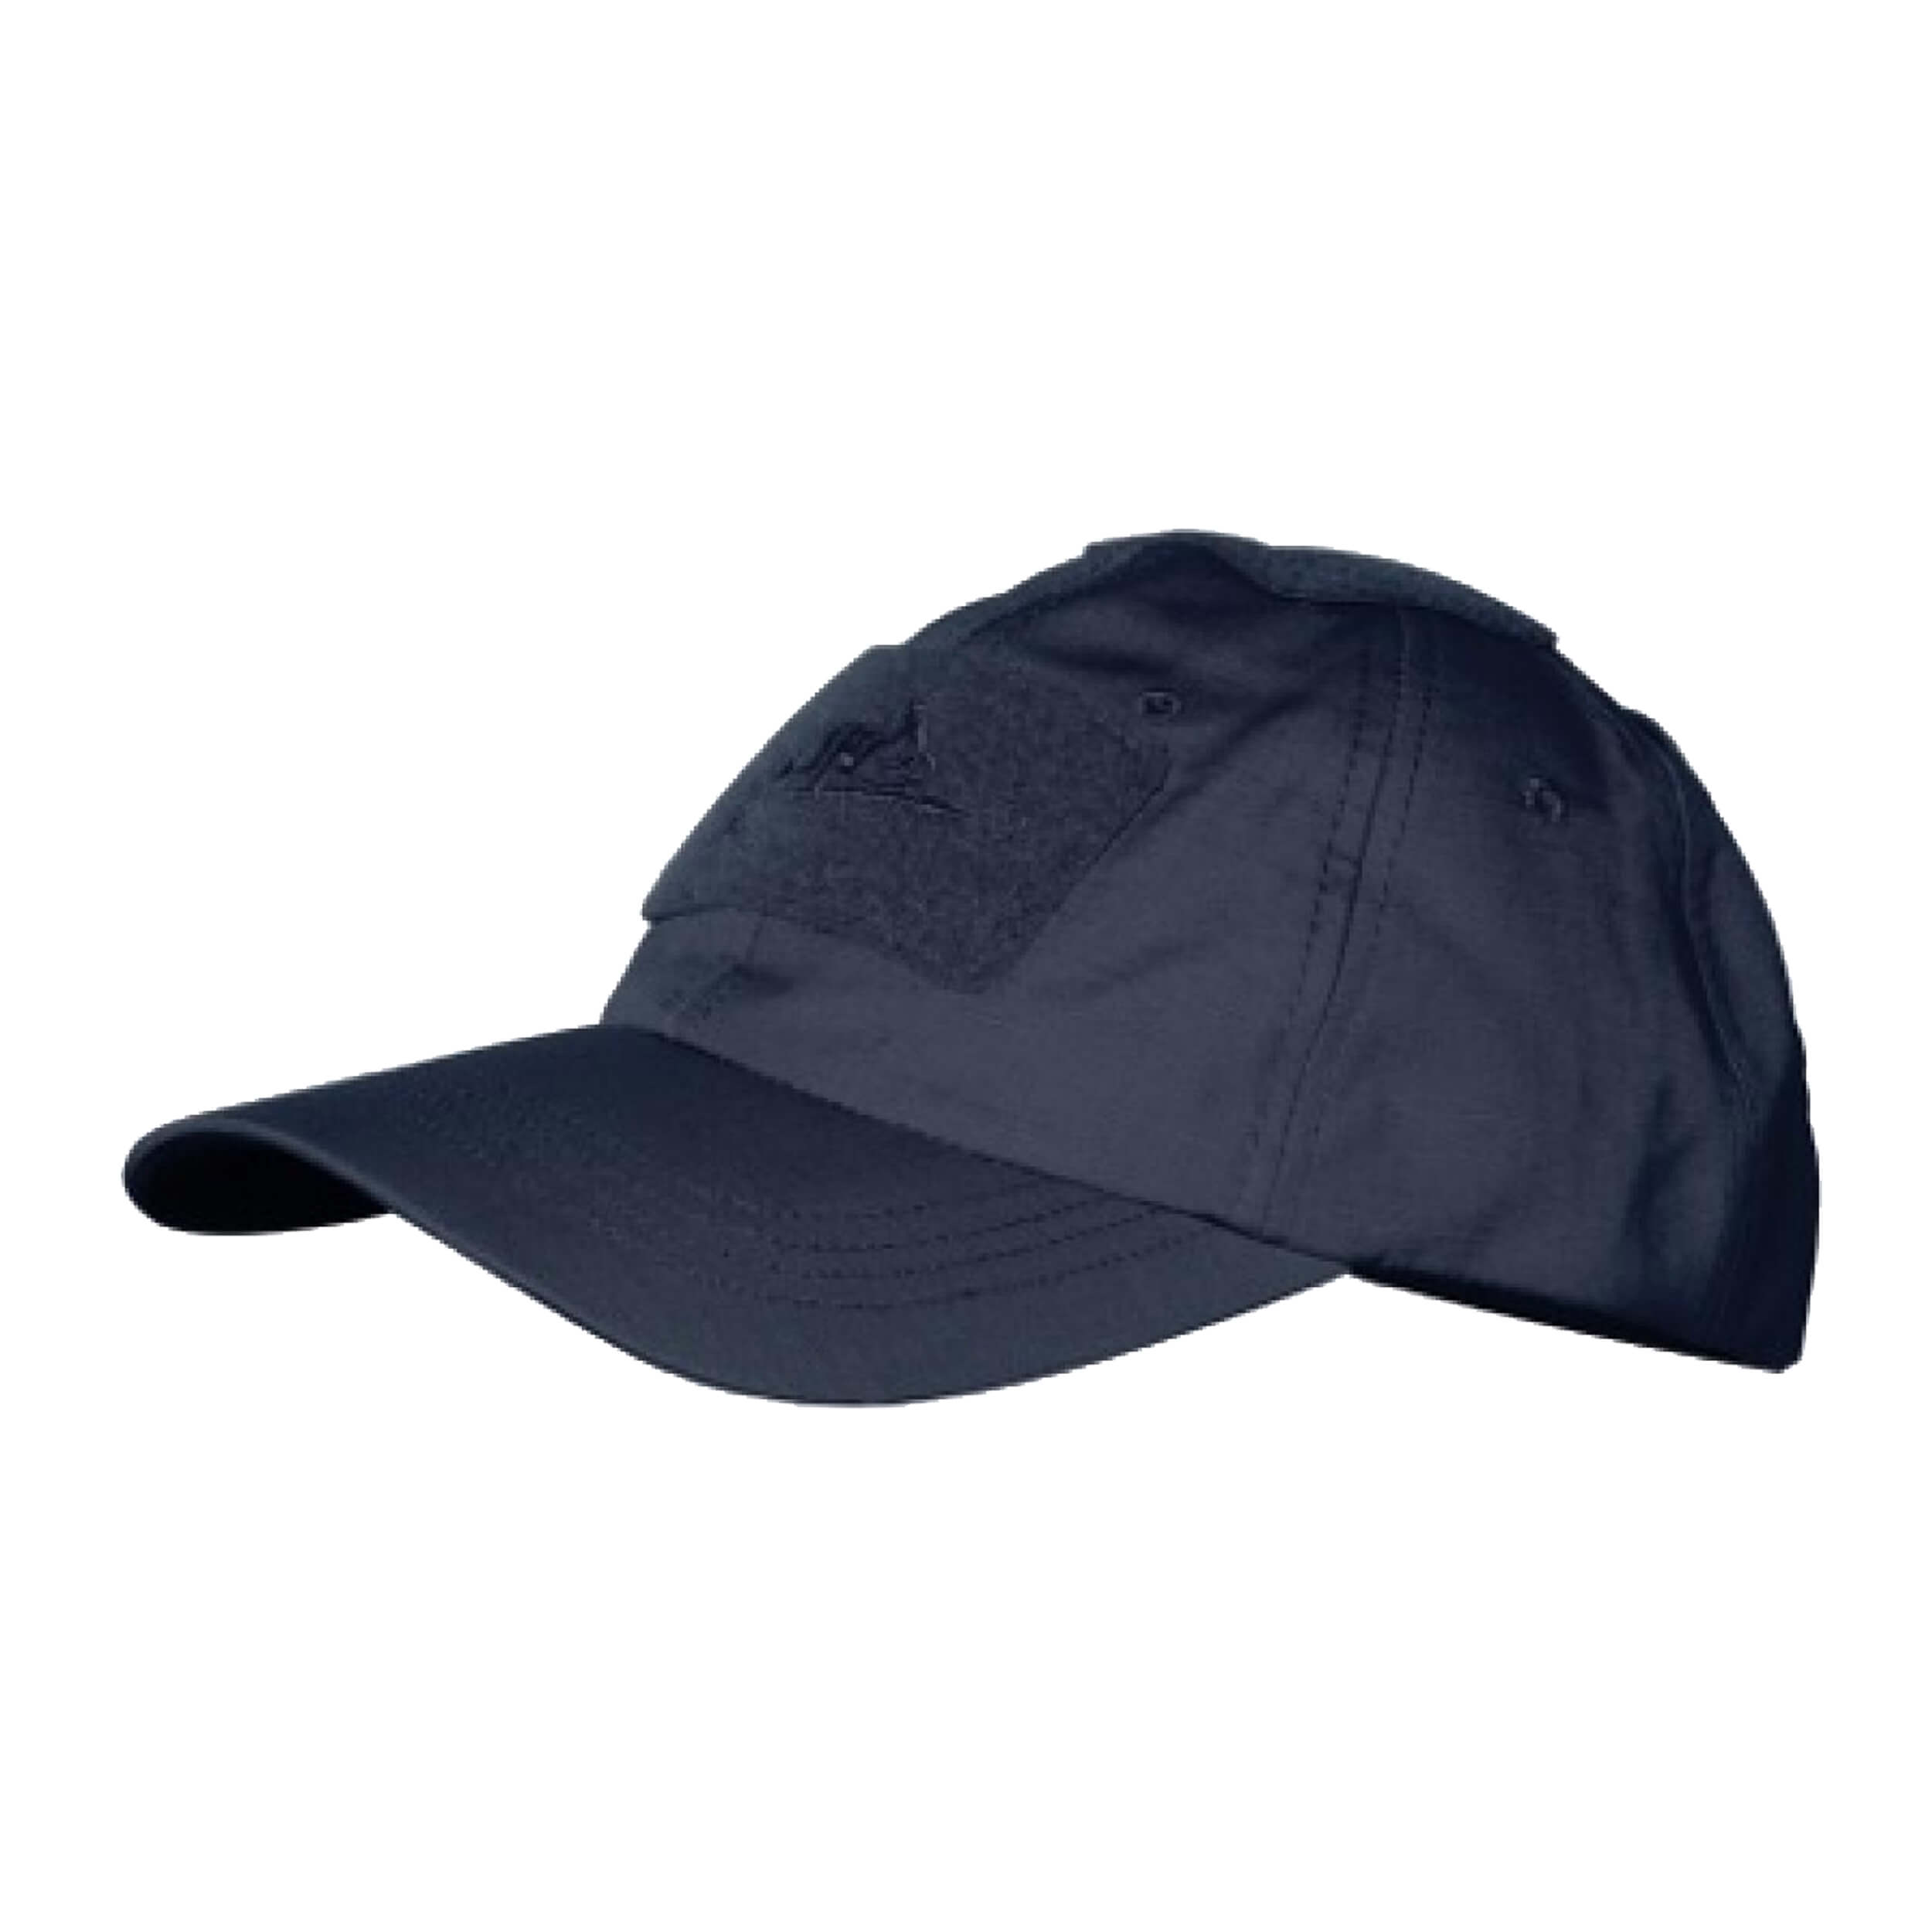 Helikon-Tex Tactical BBC Cap - PolyCotton Ripstop - Navy Blue